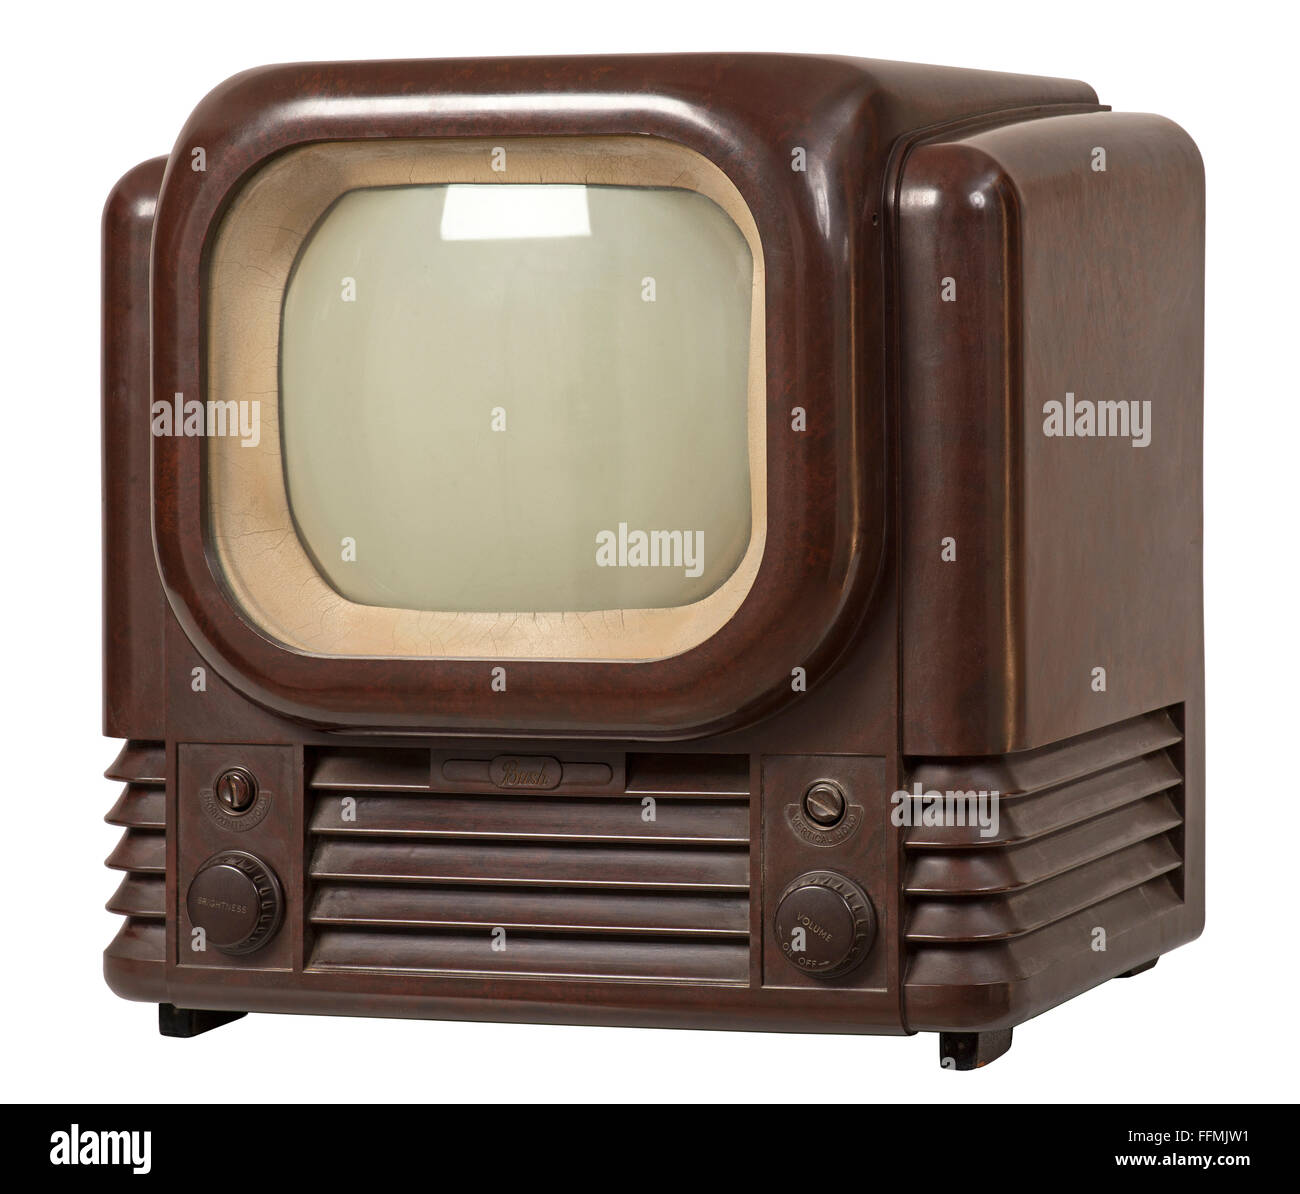 broadcast, television, television set, Bush TV 12, tabletop television set, bakelite, system for 405 lines, British - Stock Image